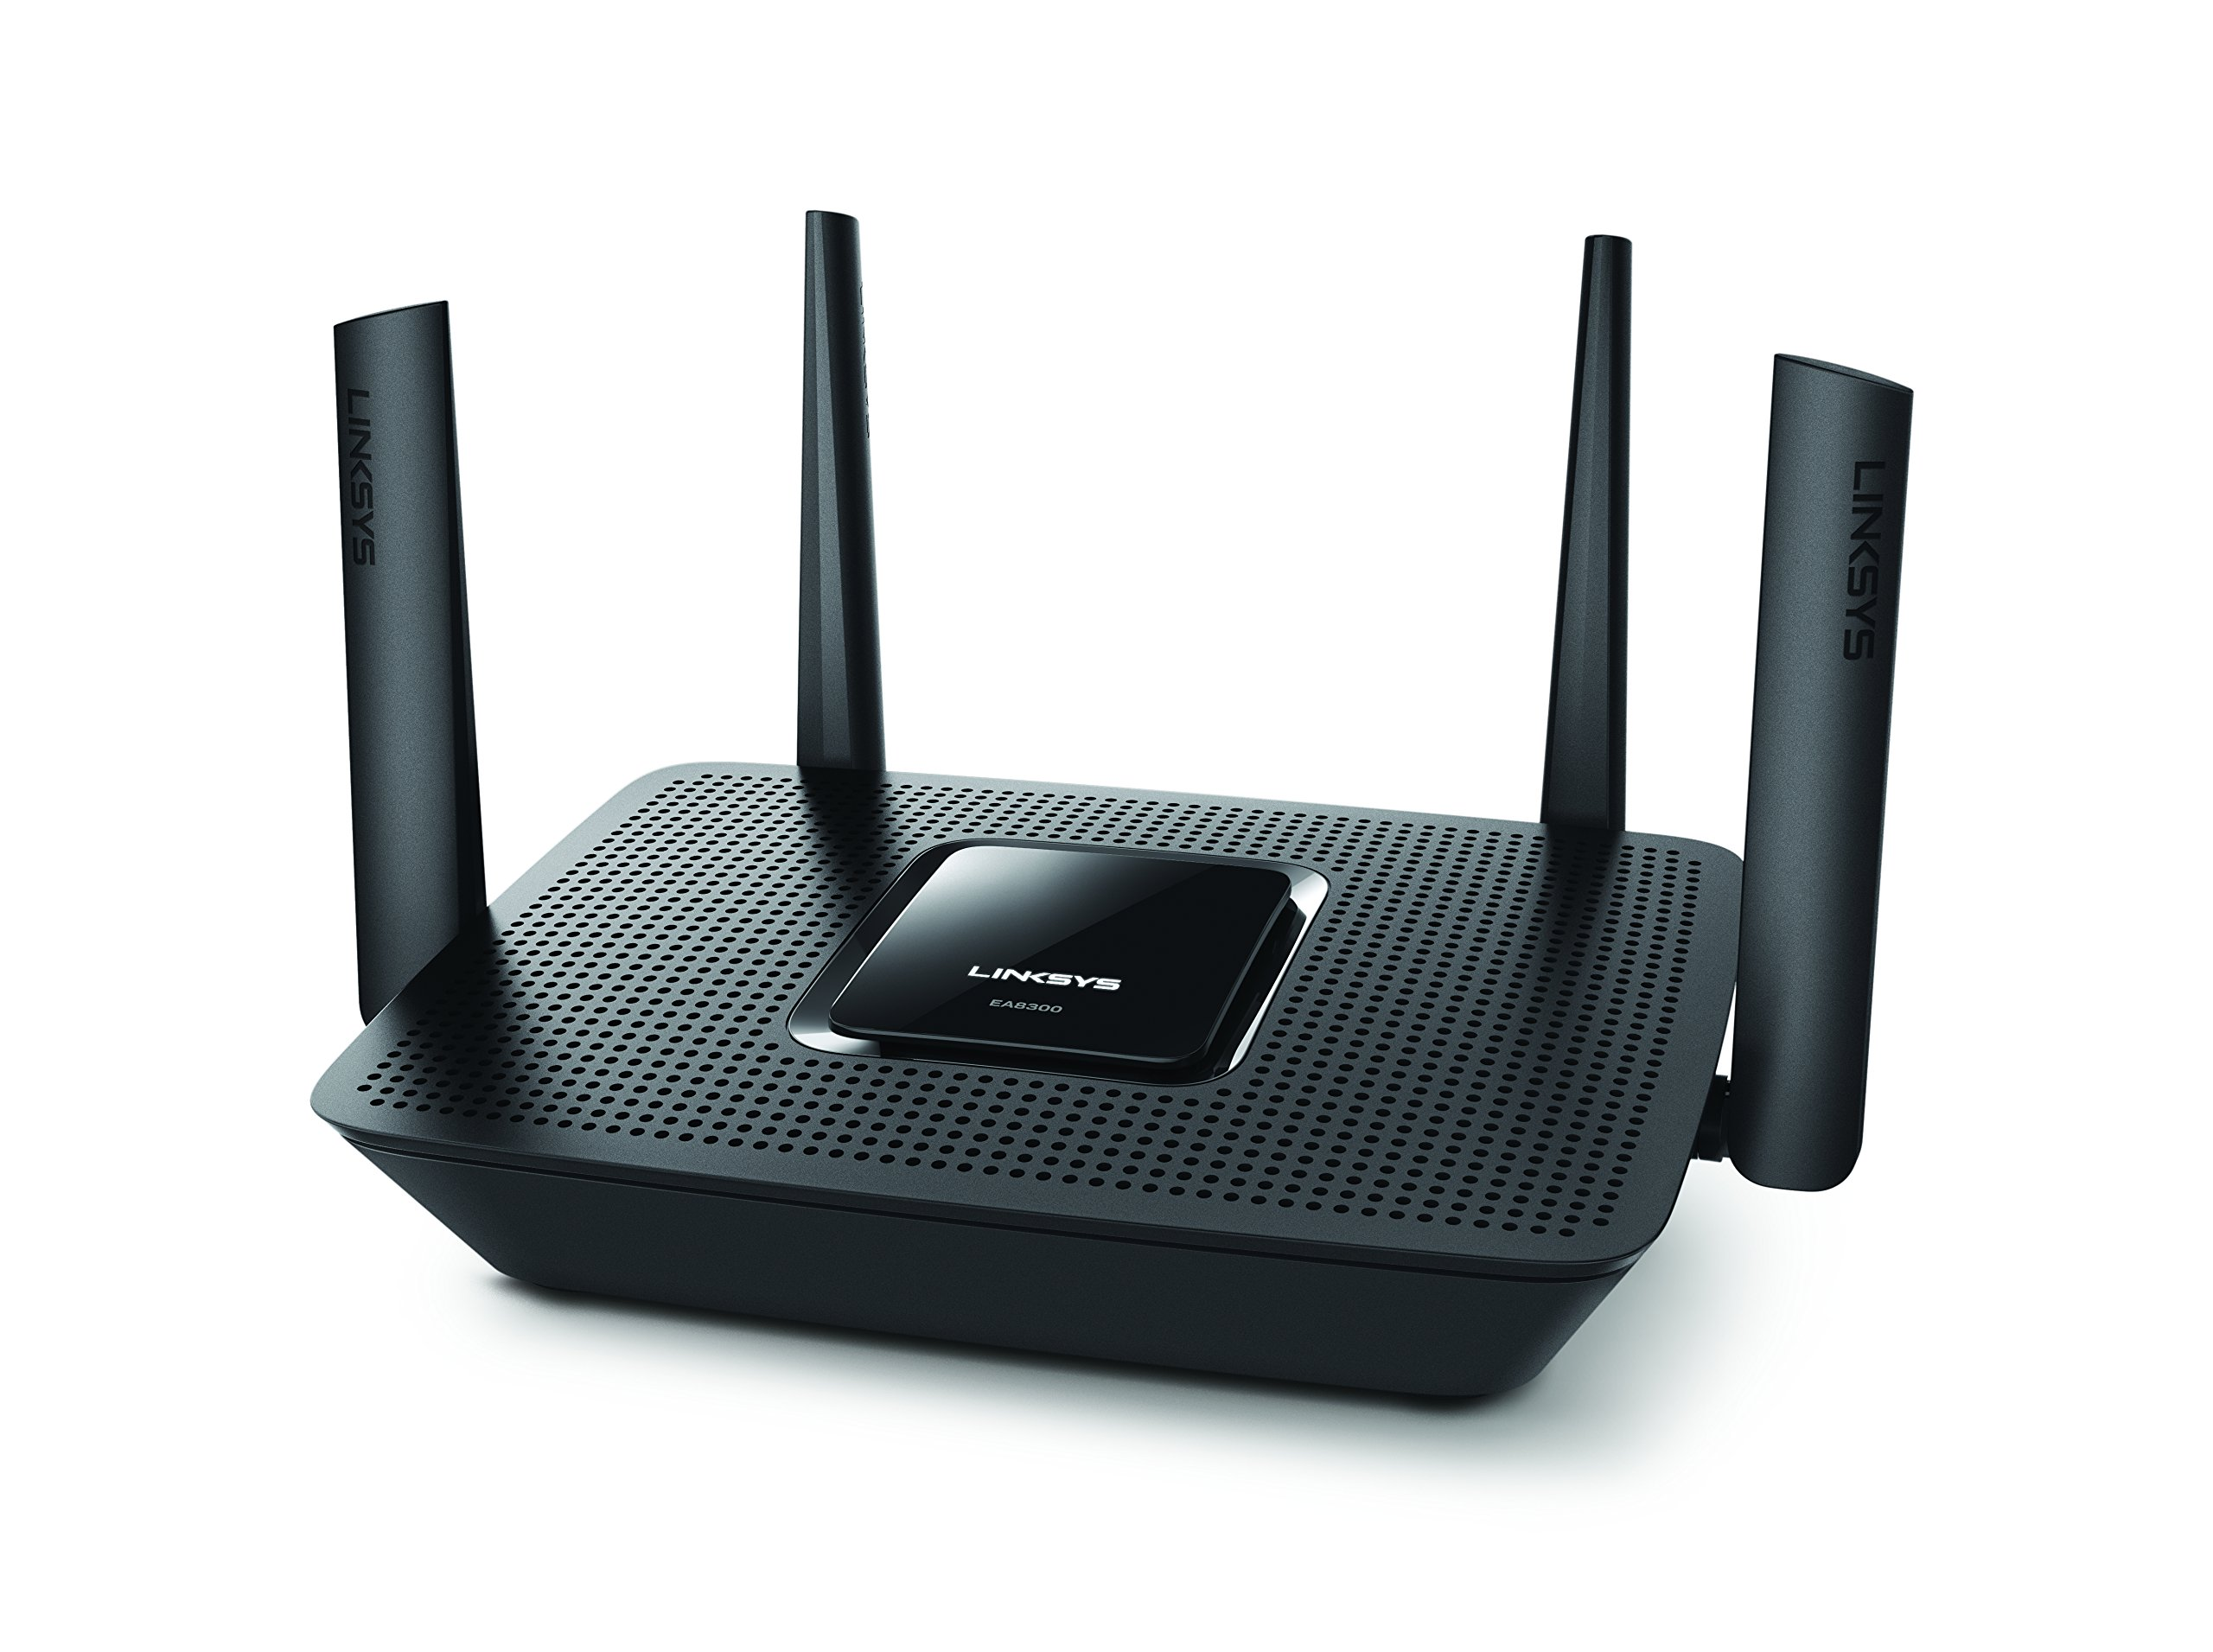 Linksys Tri-Band WiFi Router for Home (Max-Stream AC2200 MU-MIMO Fast Wireless Router) by Linksys